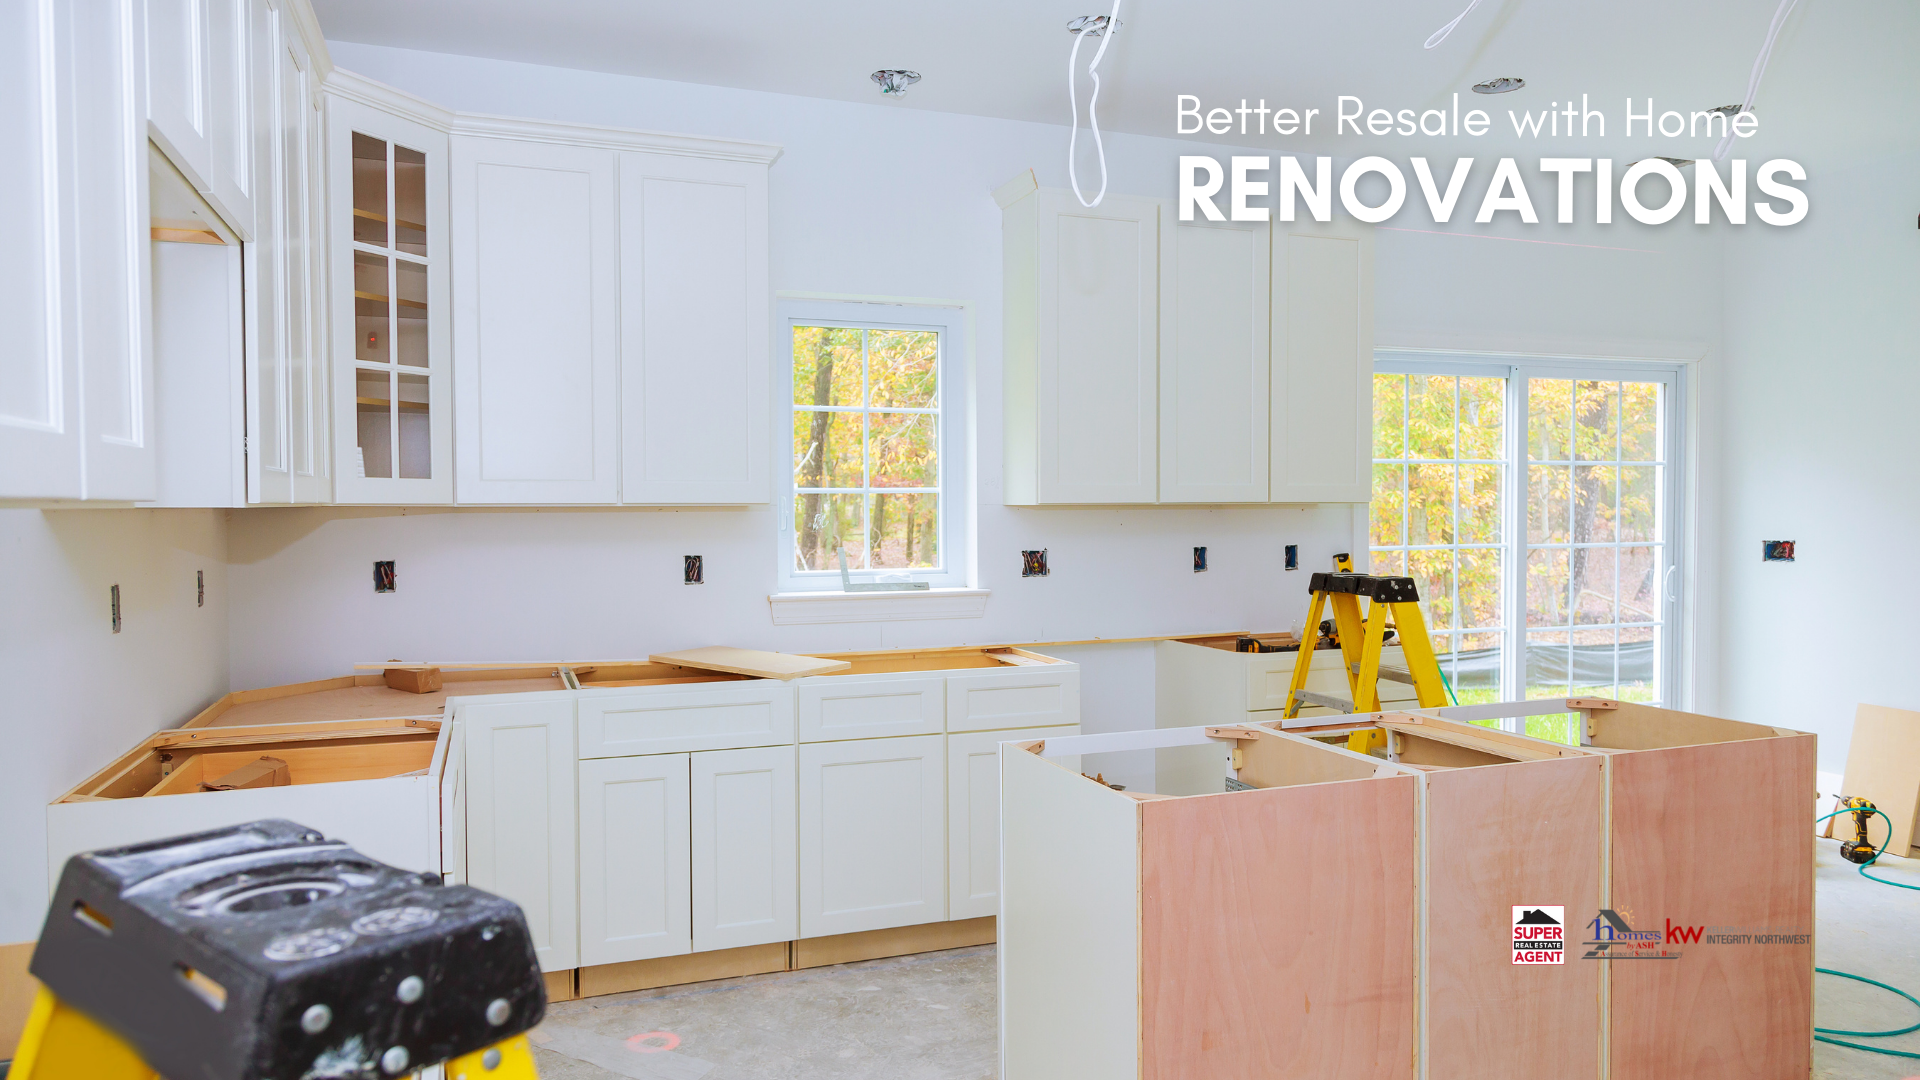 Home Renovation Strategies that help with resale!